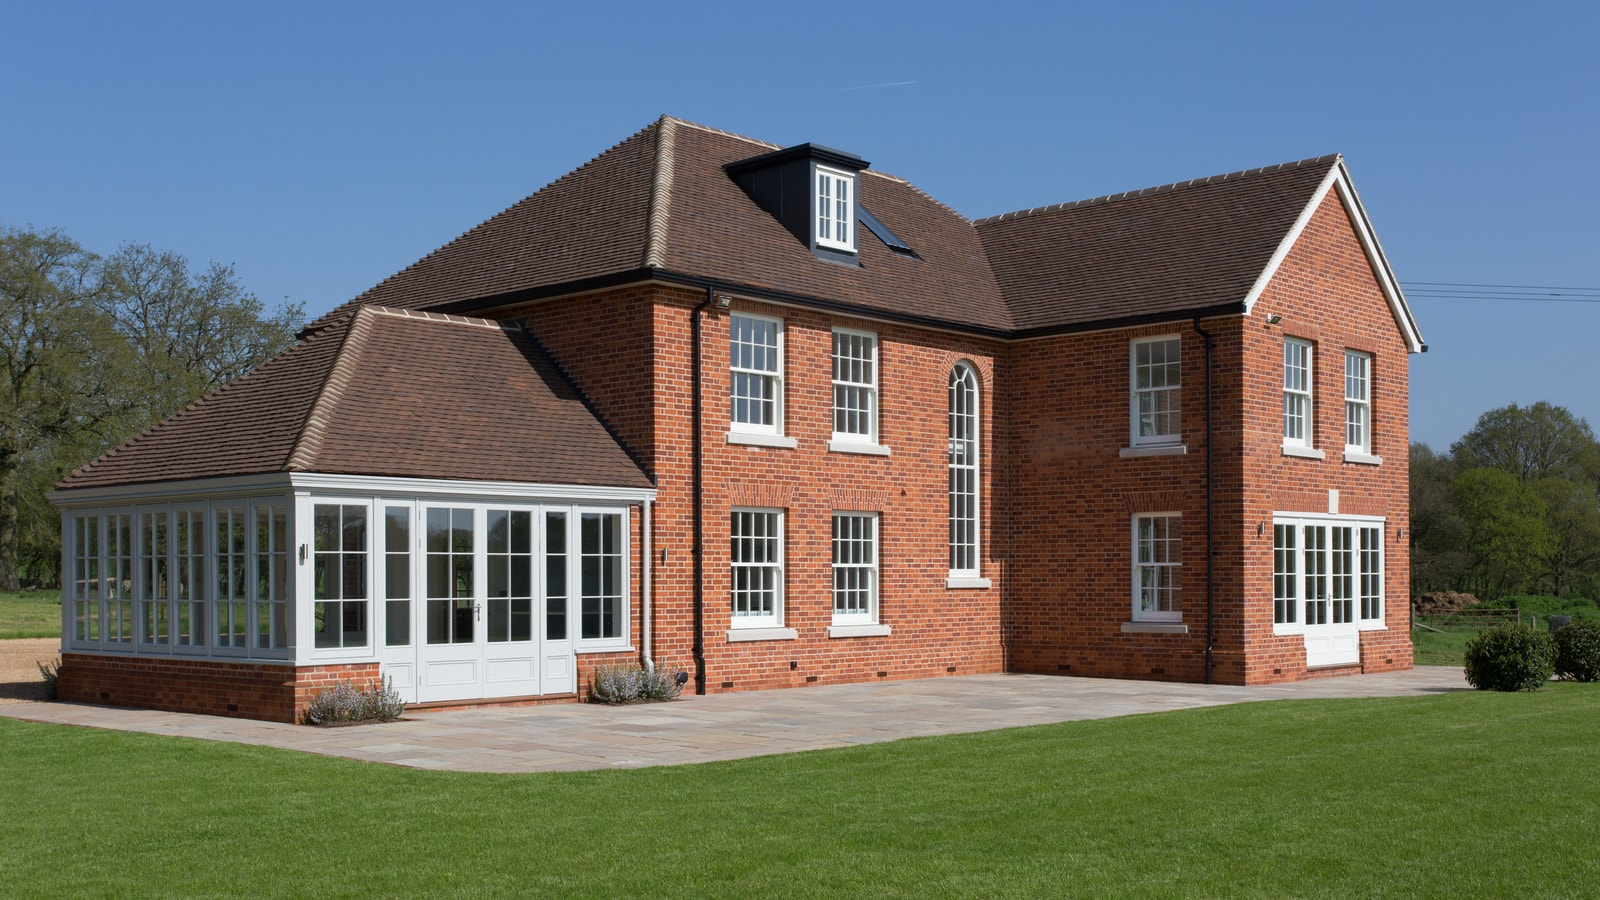 The timber windows and doors are finished in a Westbury White paint finish